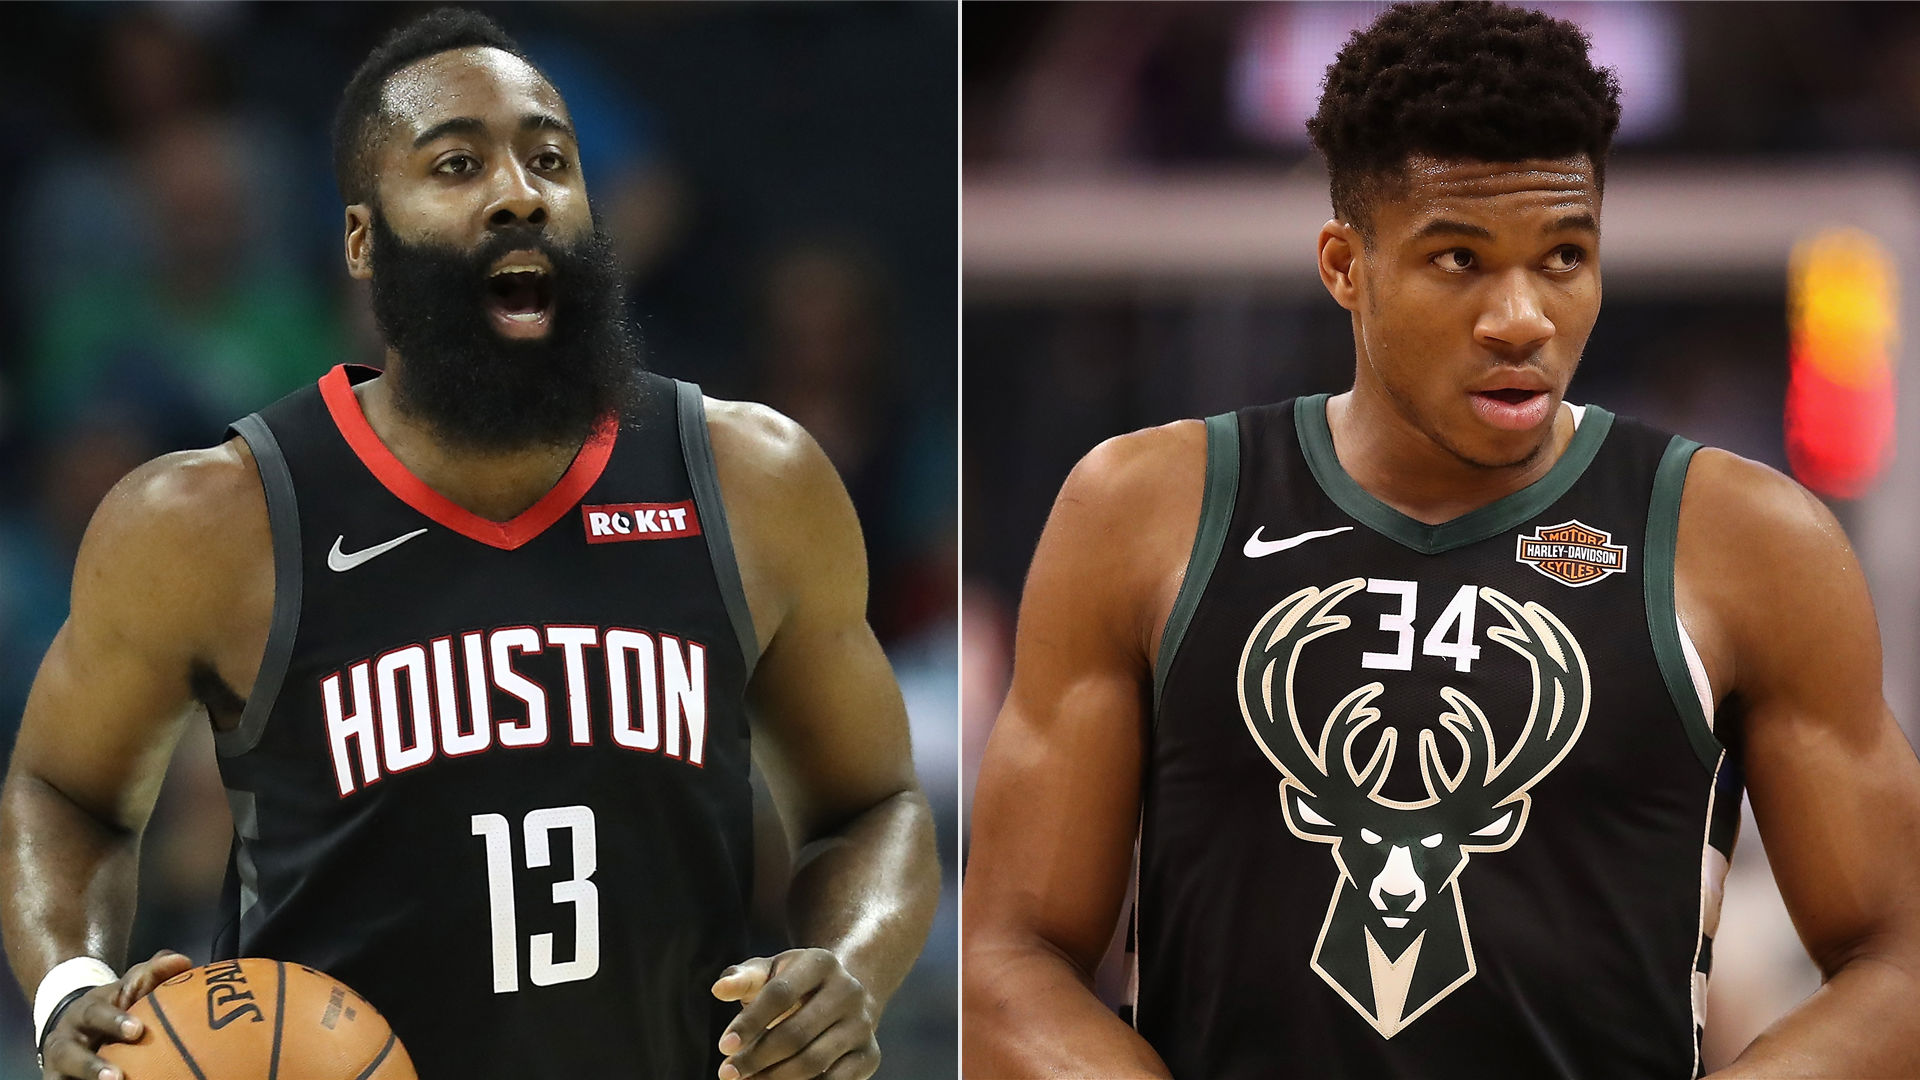 Heat Check Is James Harden Or Giannis Antetokounmpo The